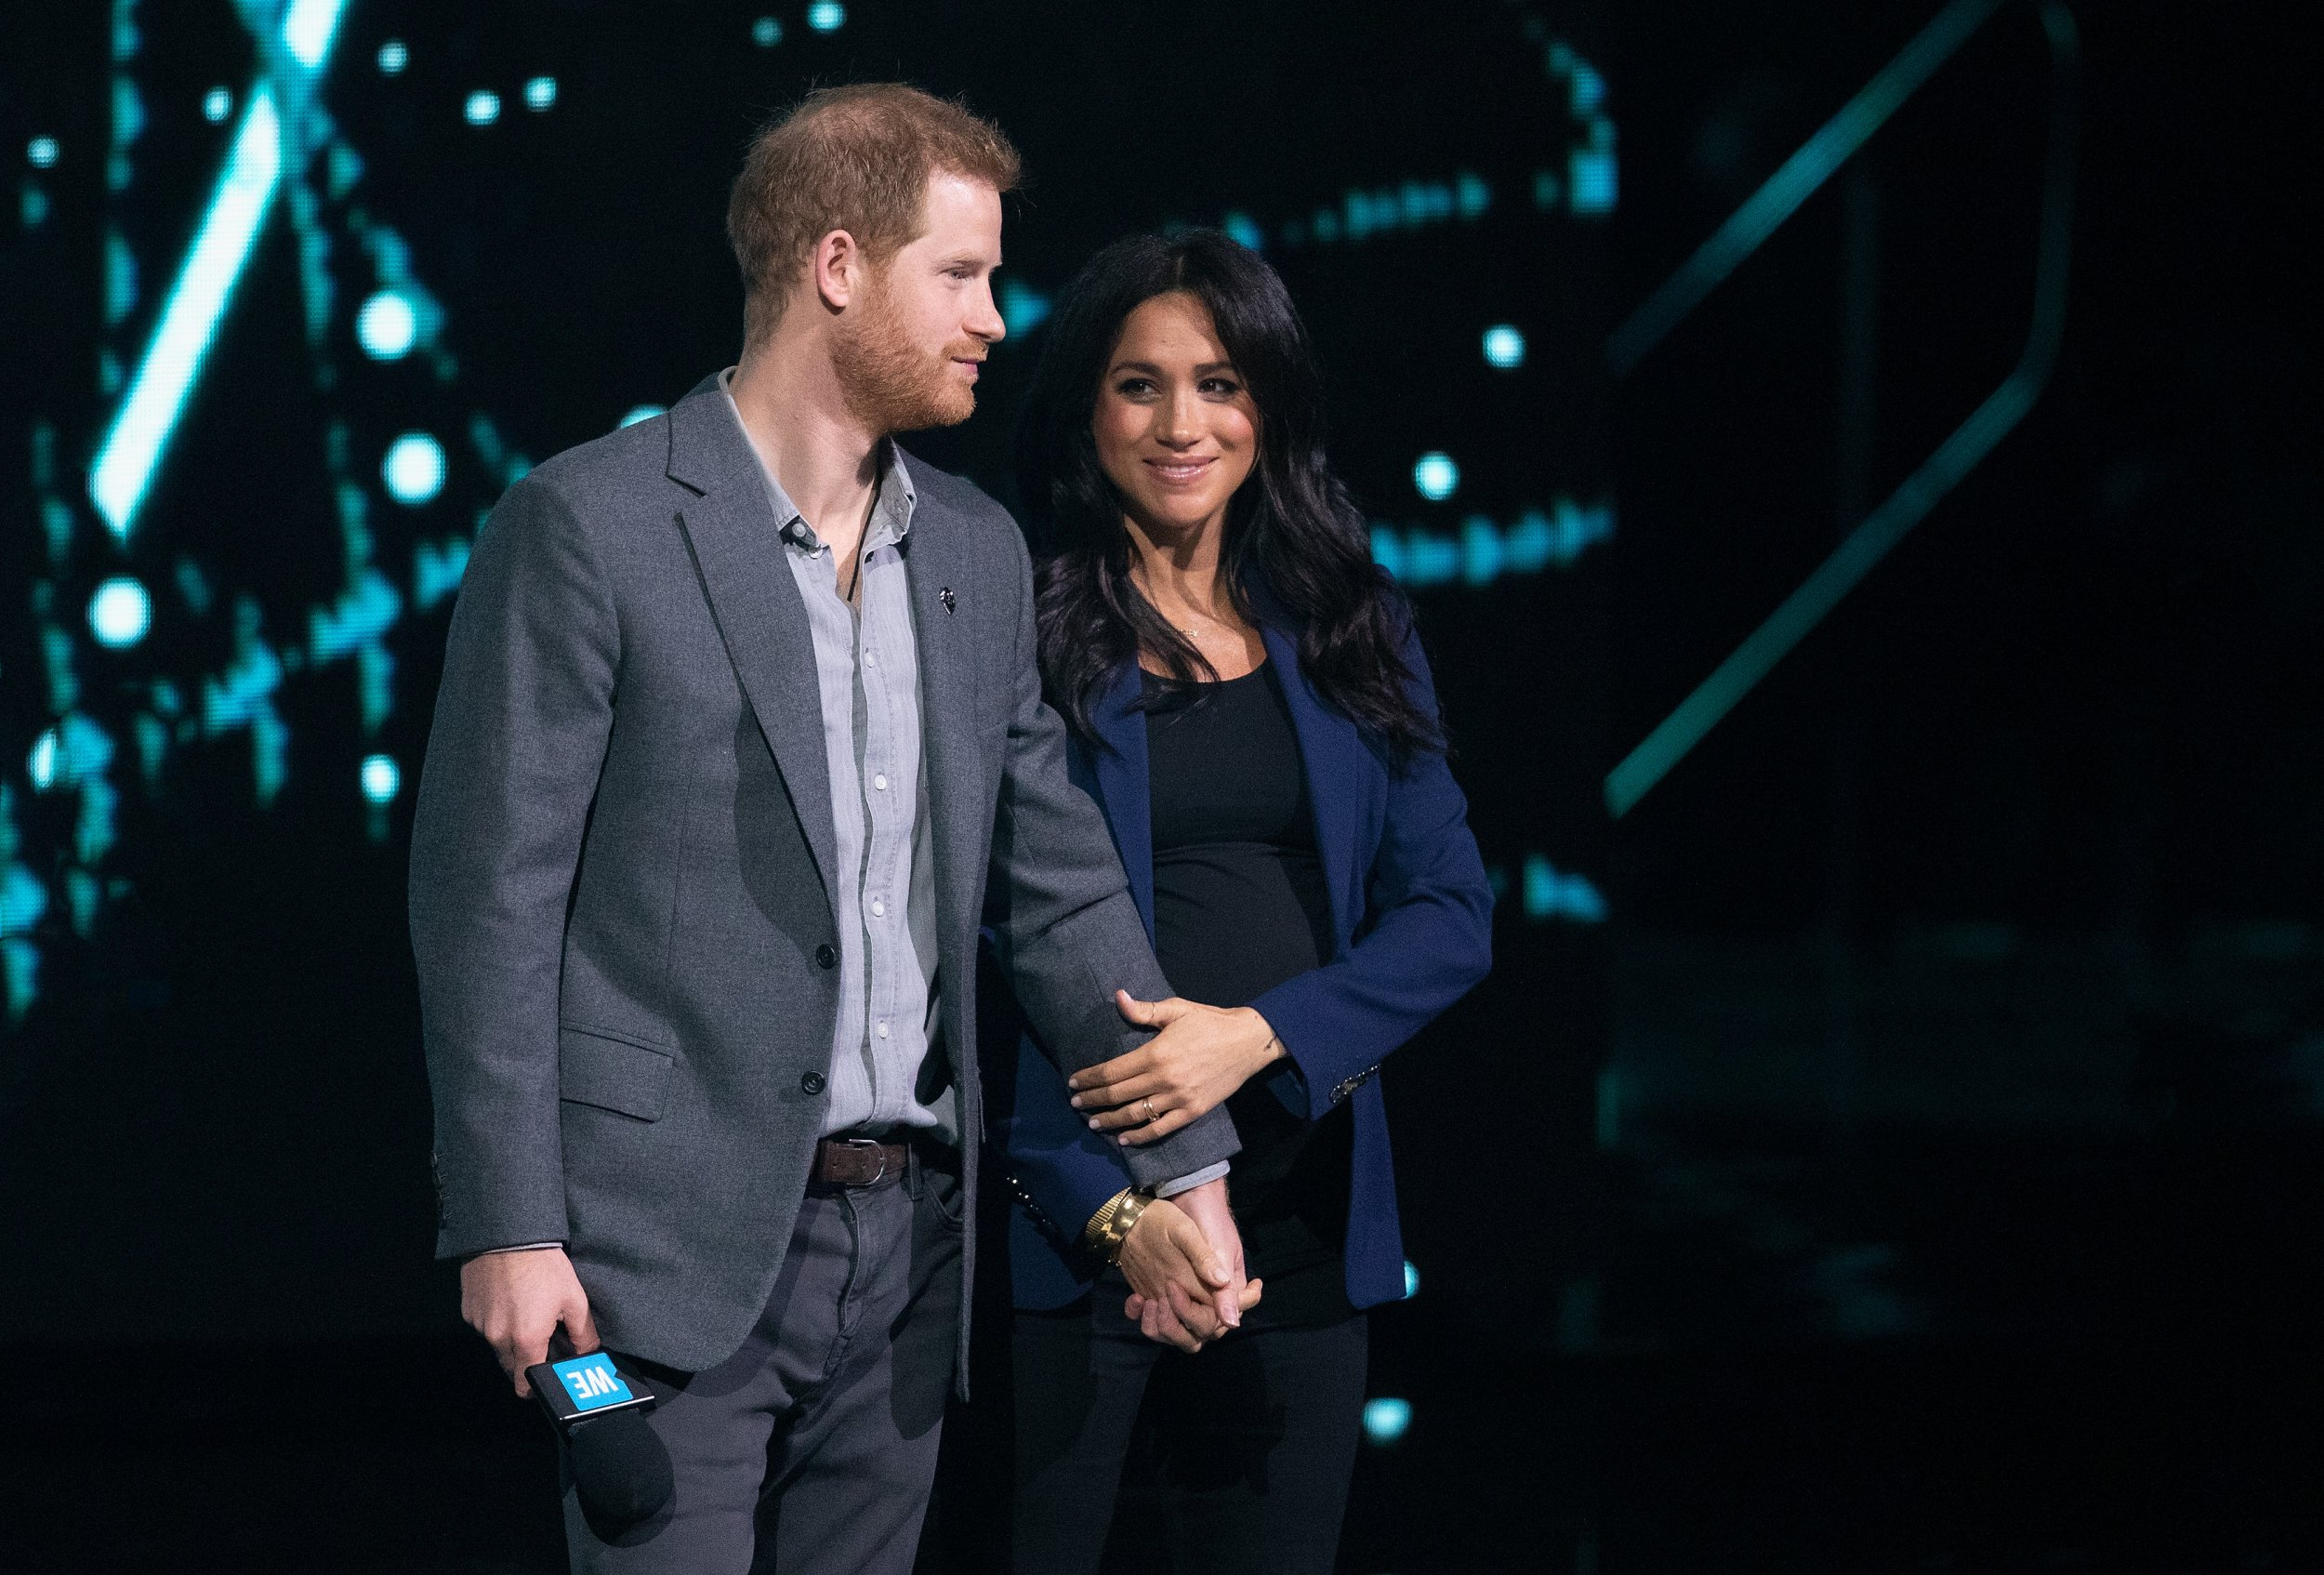 Royal baby: Duchess of Sussex goes into labour